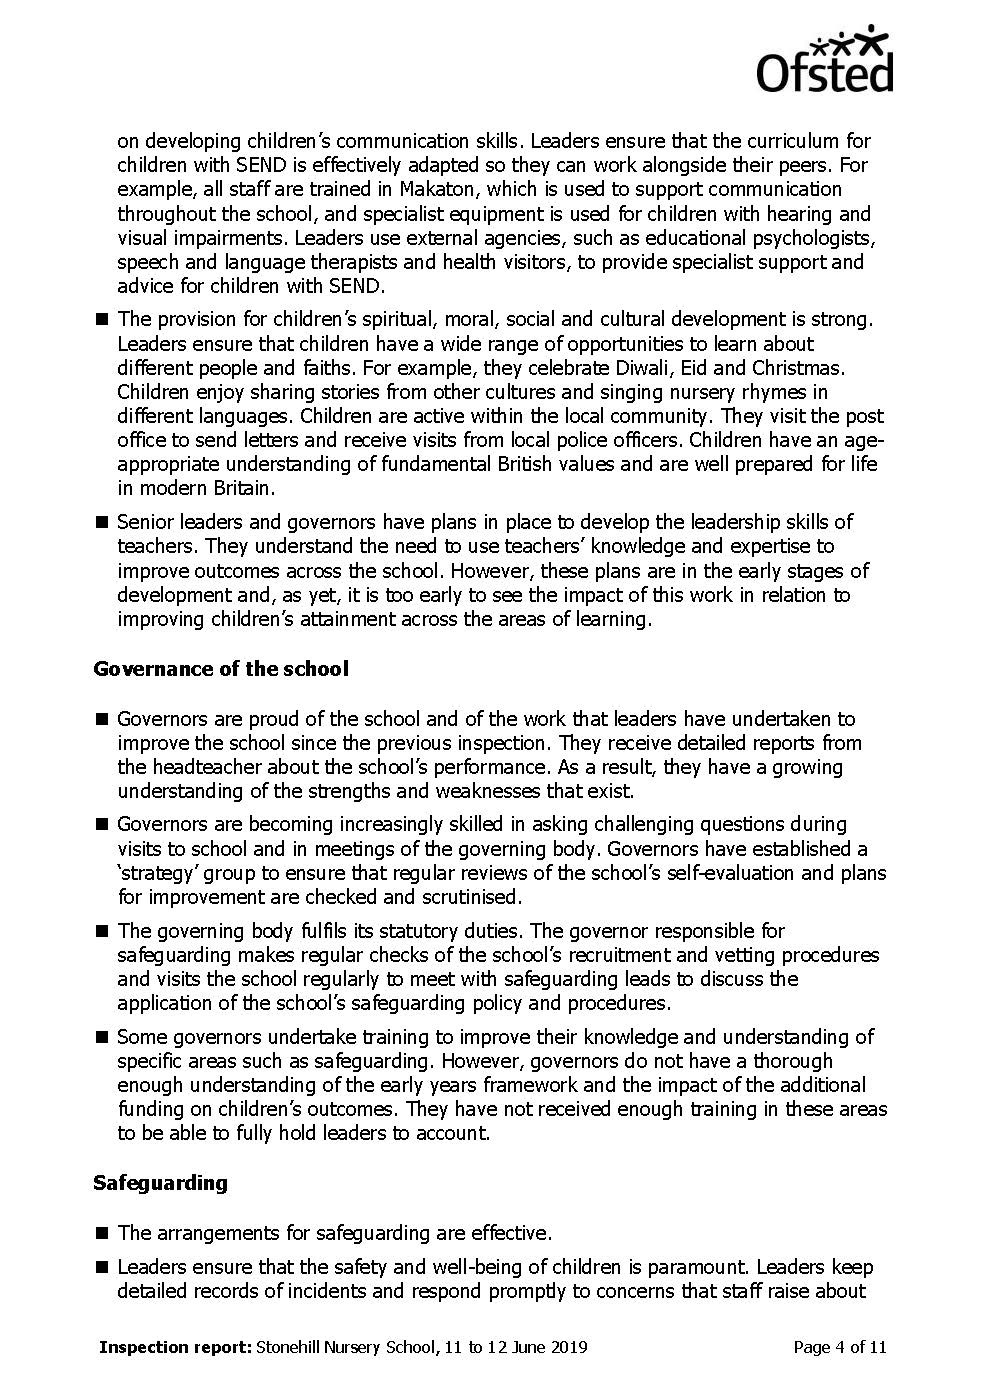 Stonehill OFSTED Report 2019_Page_04.jpg